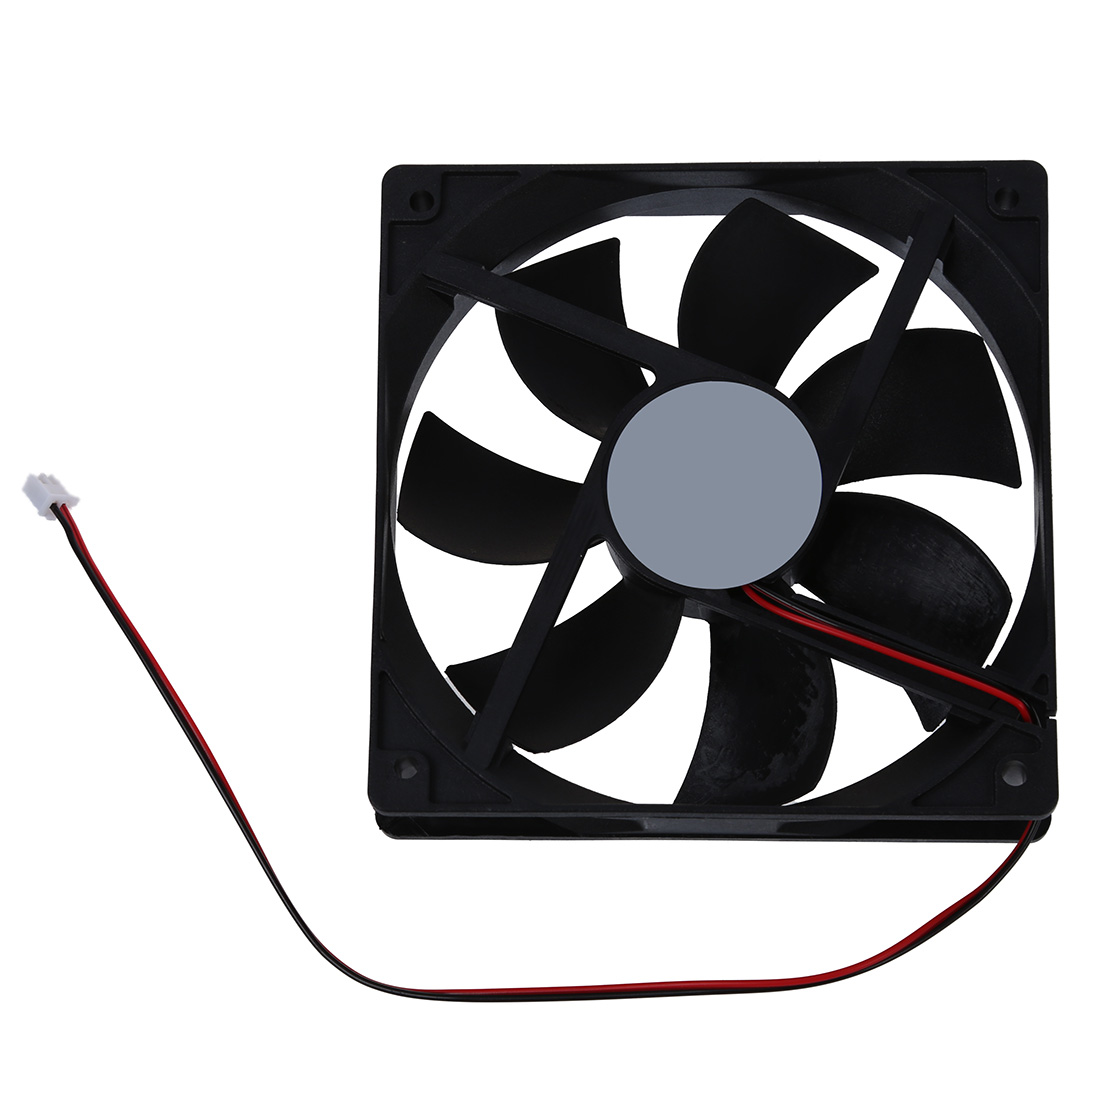 LICE 120mm X 25mm 12V 2Pin Sleeve Bearing Cooling Fan For Computer Case